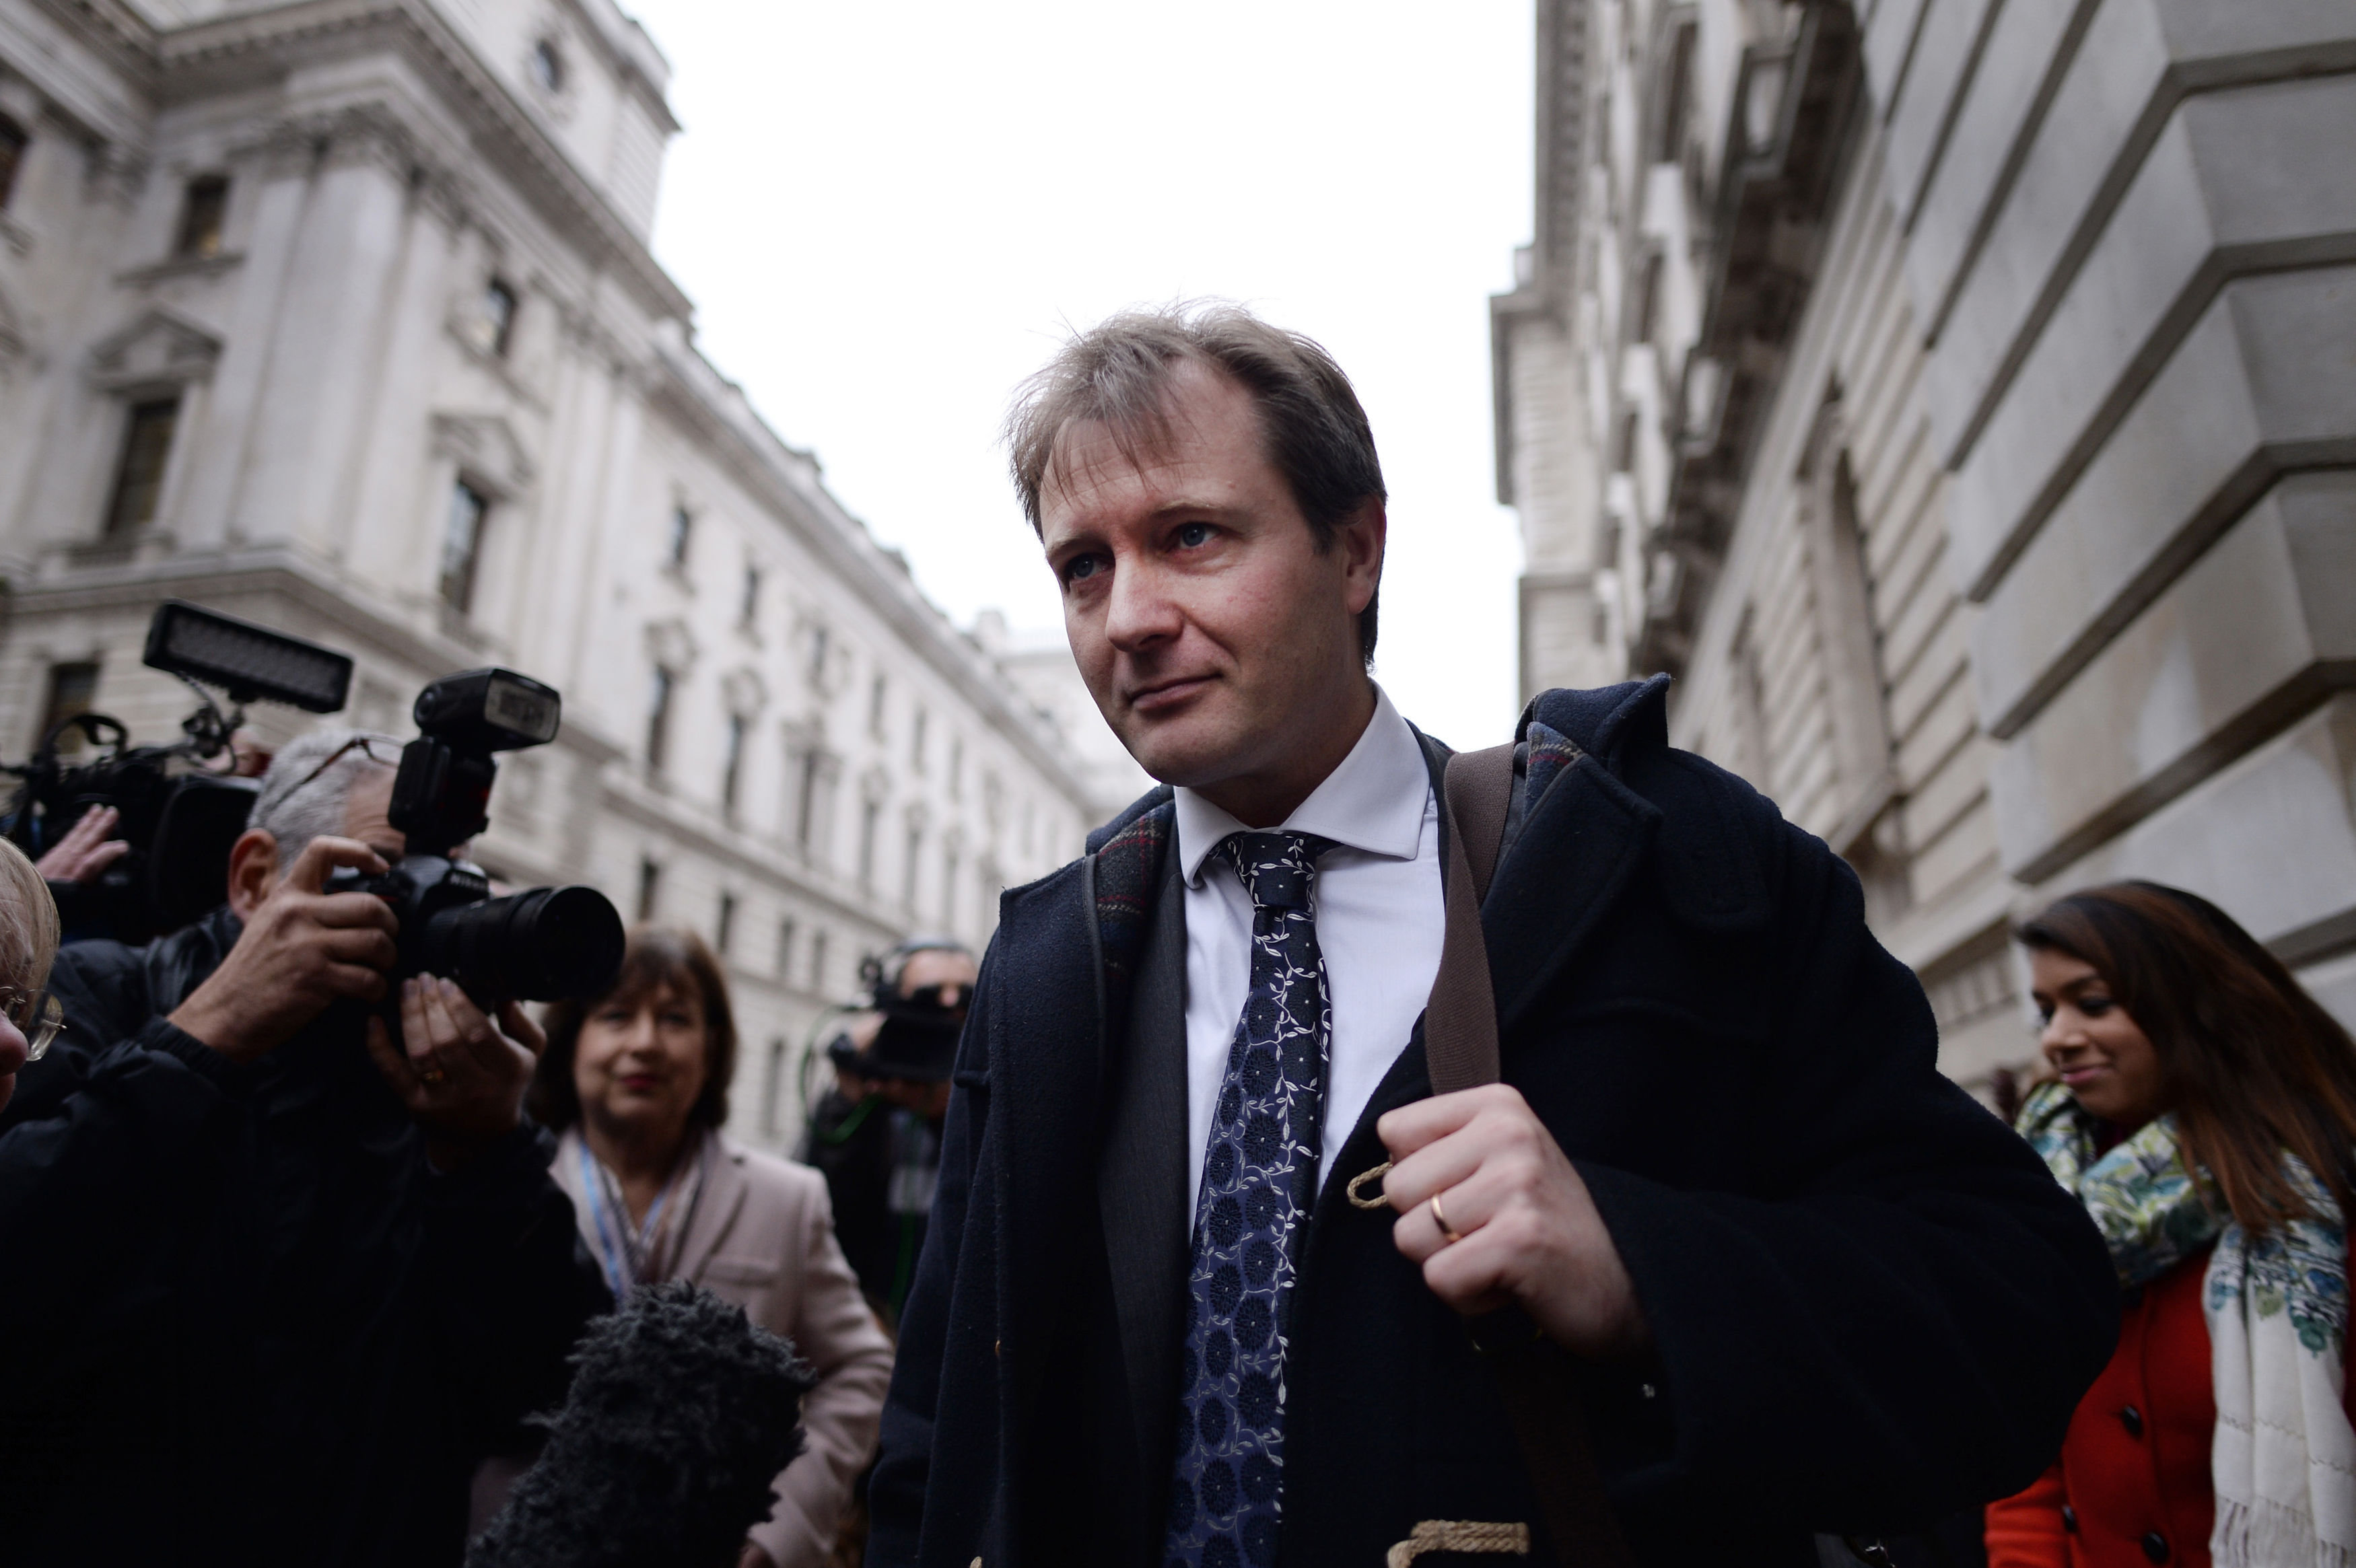 Nazanin Zaghari-Ratcliffe's Husband Richard Wants Her To Come Home To 'Real Life' After Iranian Imprisonment